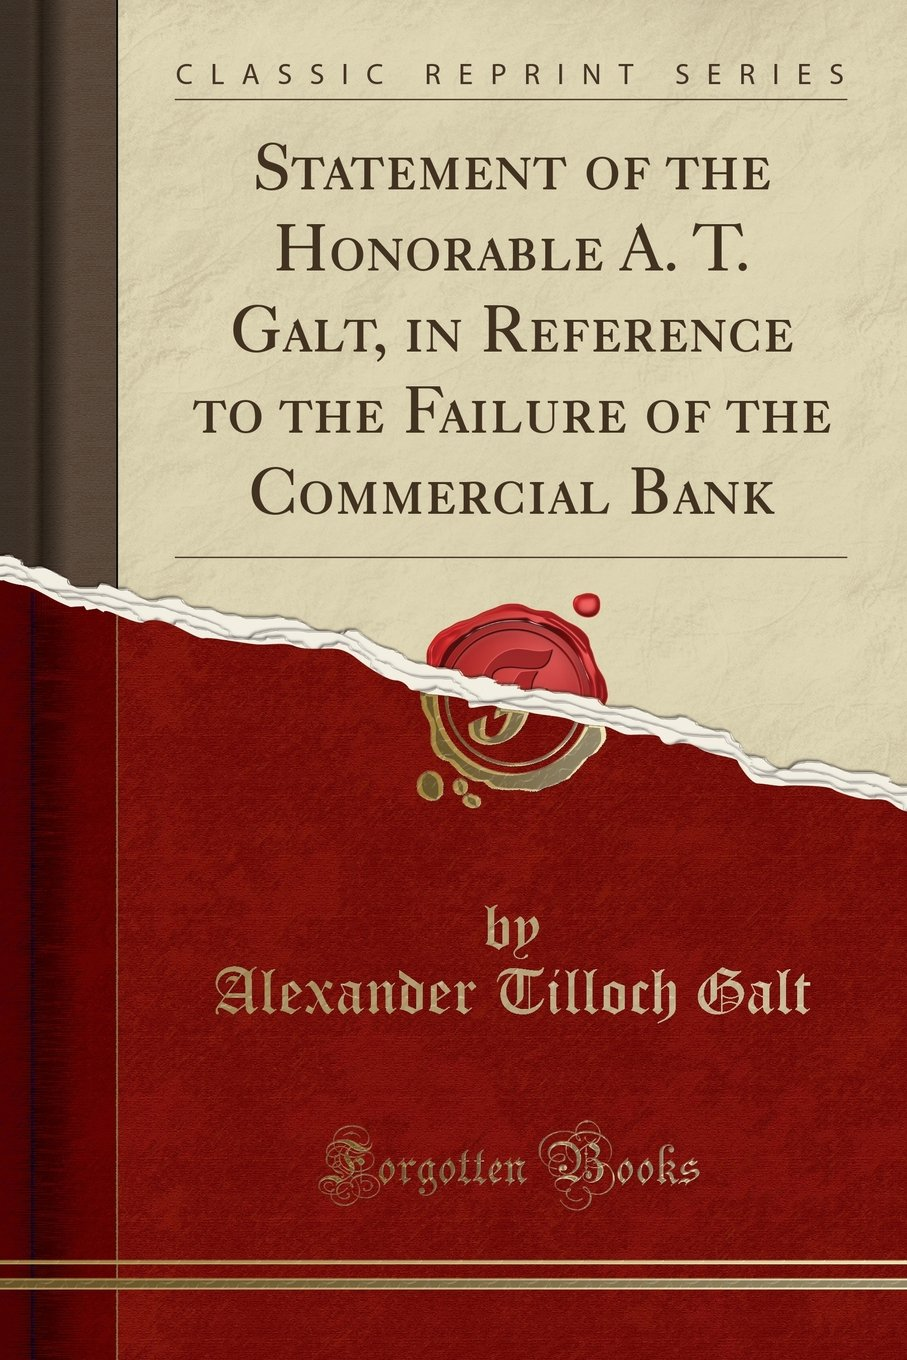 Read Online Statement of the Honorable A. T. Galt, in Reference to the Failure of the Commercial Bank (Classic Reprint) ebook